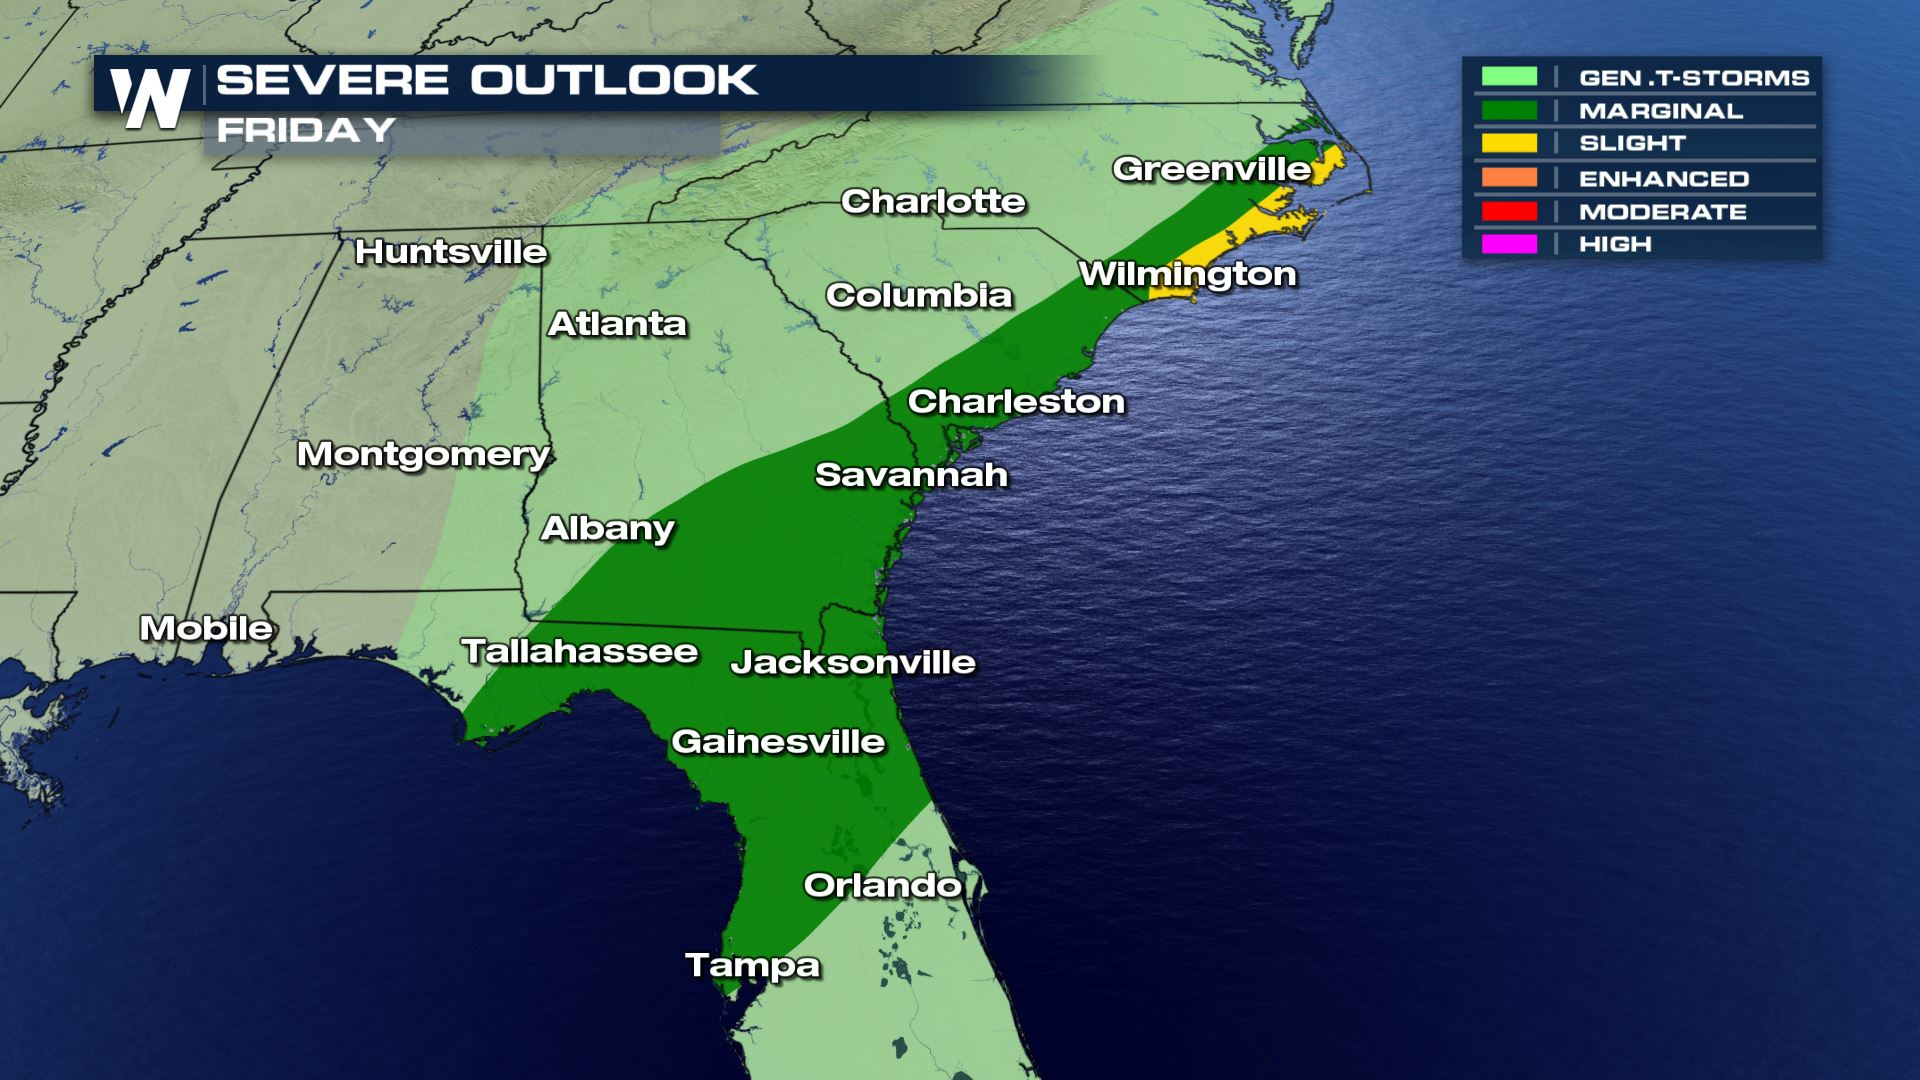 Severe Weather Chances for the Southeast Friday